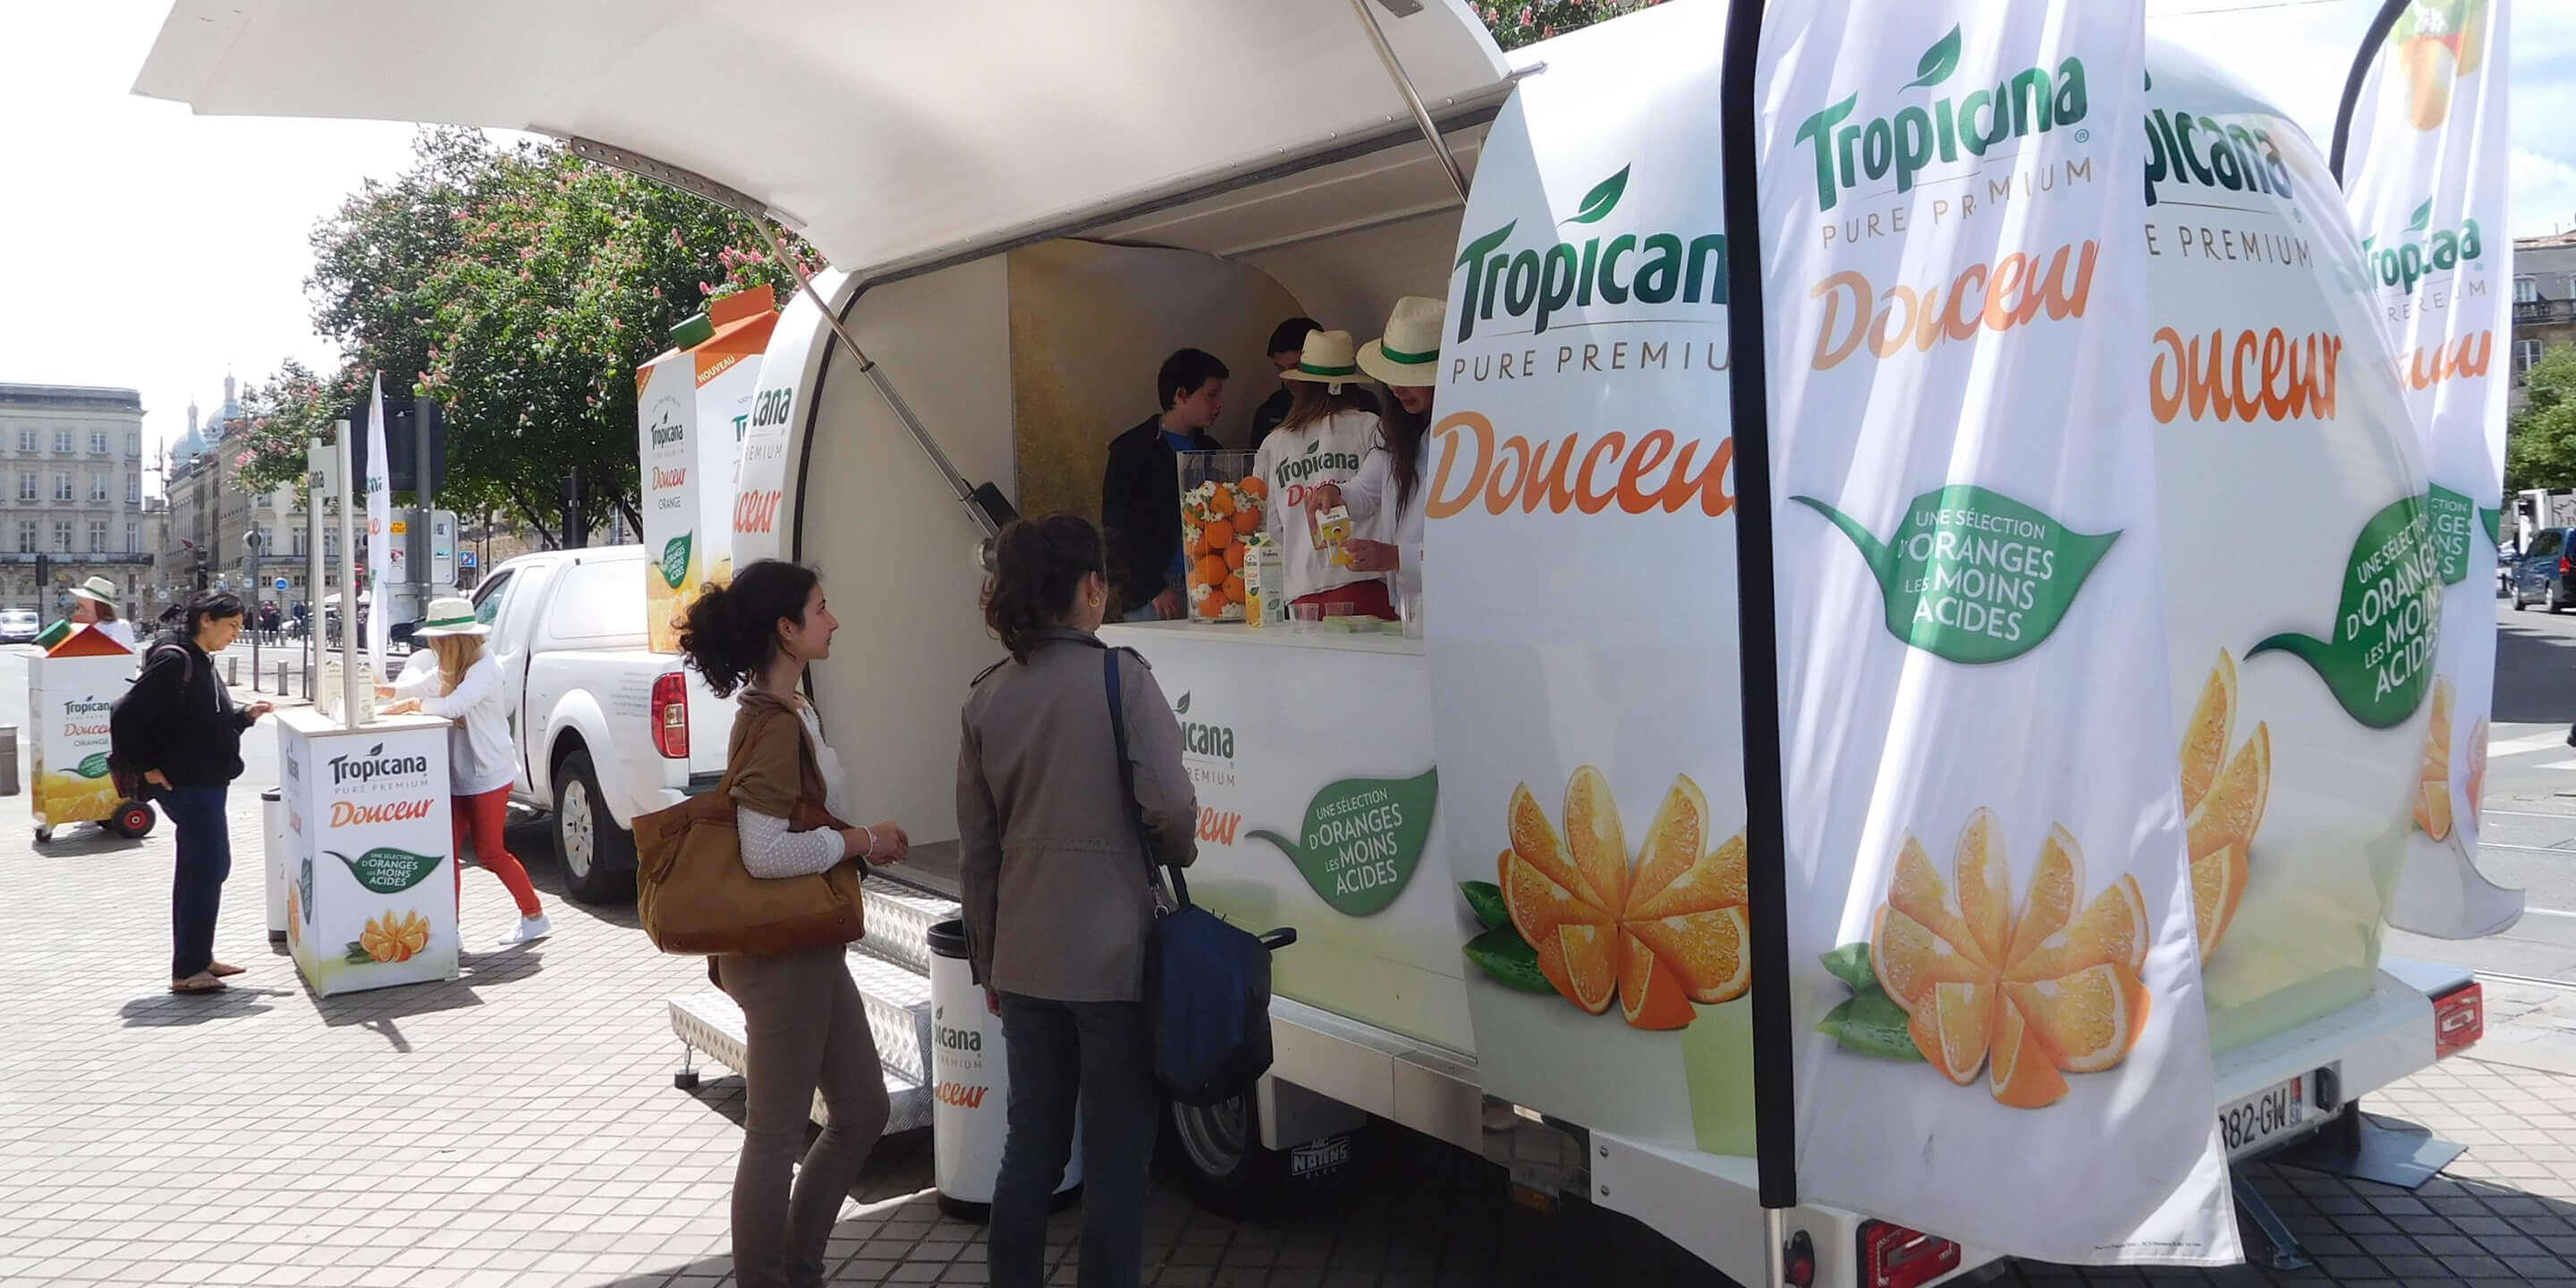 Exhibition Trailers: Explorer Promotional Vehicle for Tropicana Product Tasting Tour